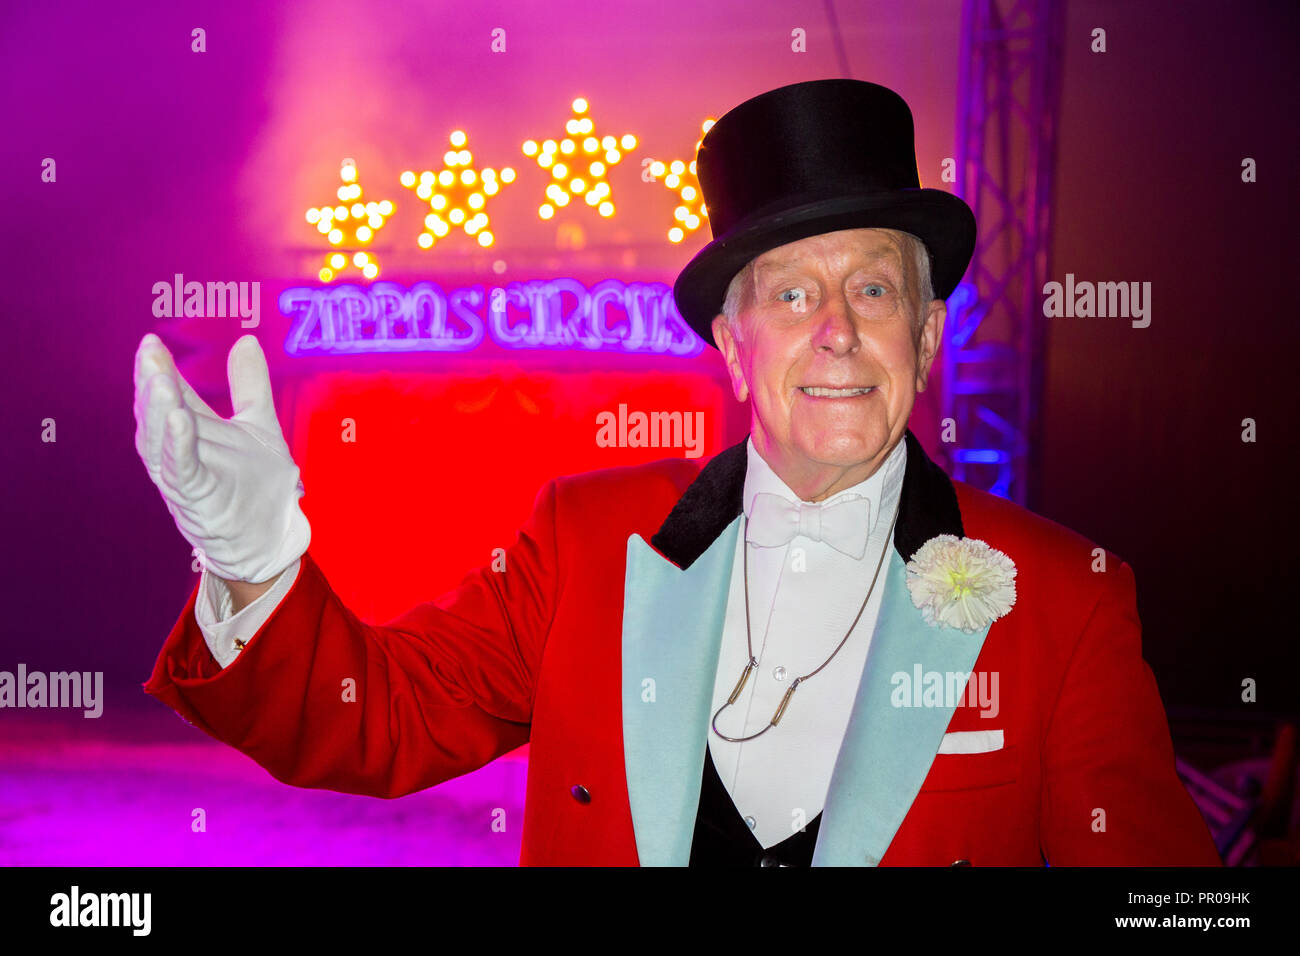 Norman Barrett, MBE, shown at Zippos Cirus. He is a veteran British circus ringmaster. (102) - Stock Image